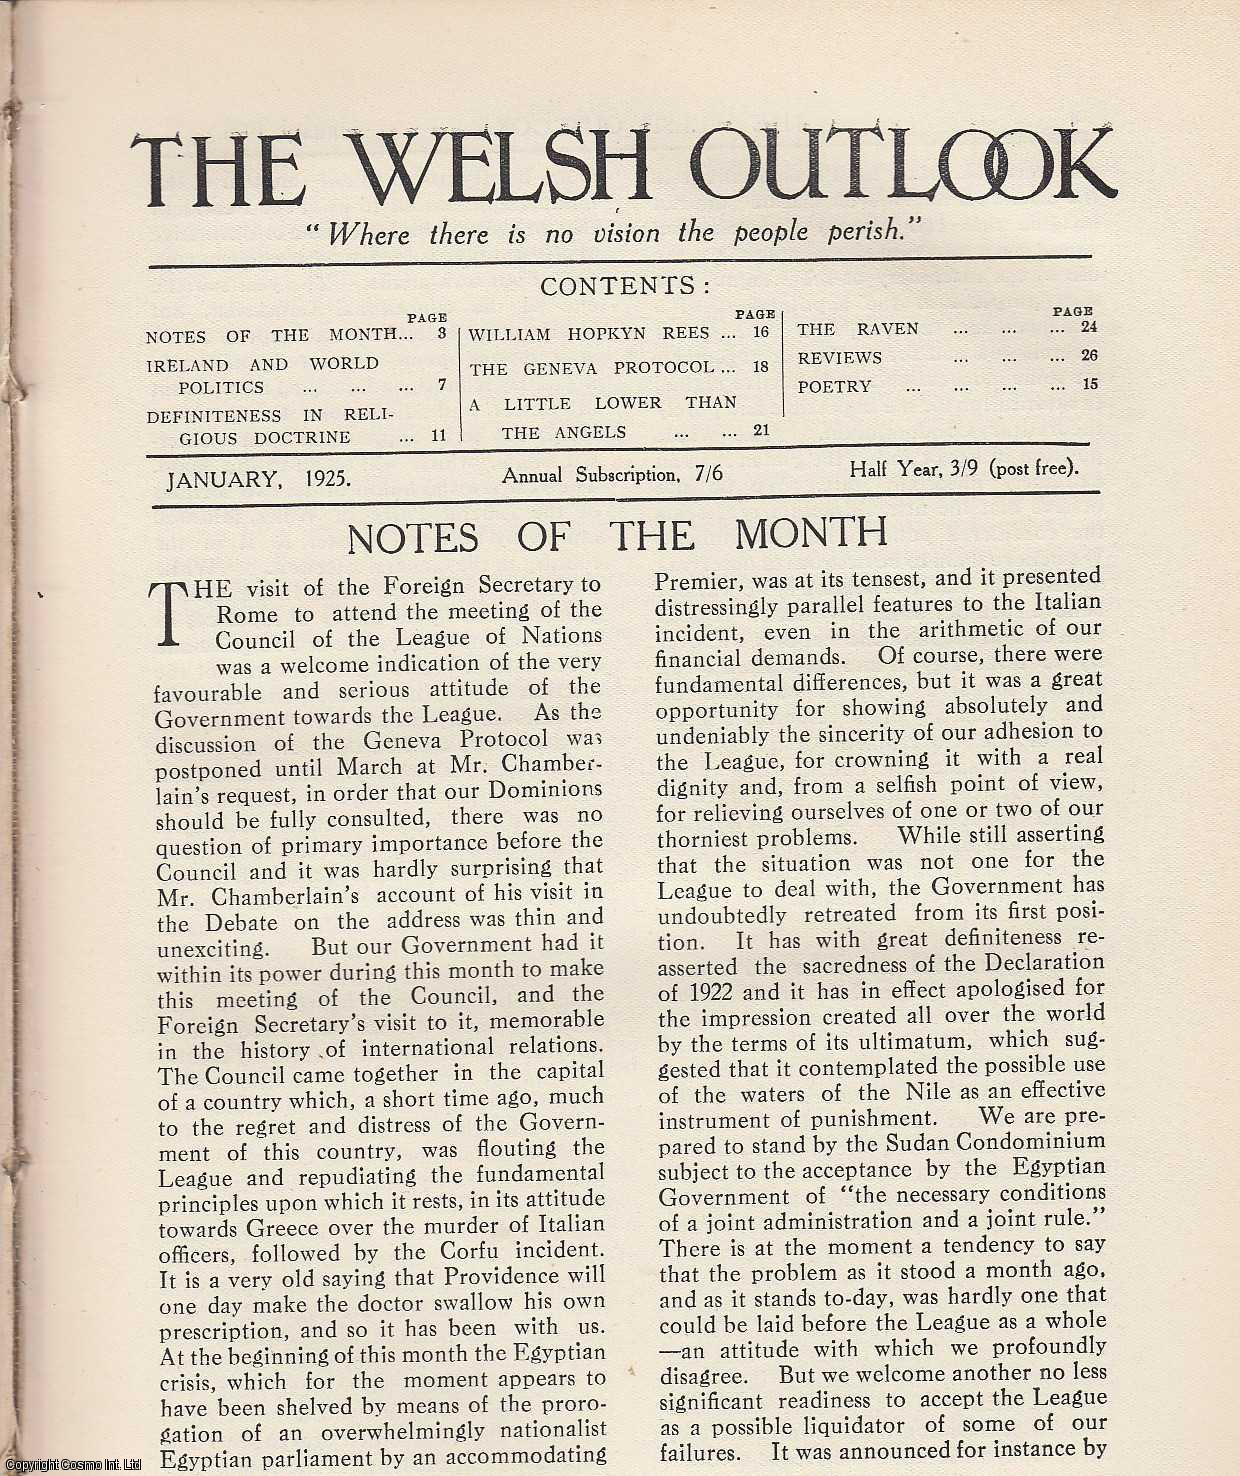 The Welsh Outlook. A Monthly Journal of National Social Progress. January, 1925. Contains; Ireland and World Politics by G.M.Ll. Davies; Definiteness in Religious Doctrine by Rev. Dr. E.E. Thomas; William Hopkyn Rees: A Great Welsh Missionary by R.K. Evans; The Geneva Protocol by A.O. Roberts; A Little Lower than The Angels by D.J. Davies; The Raven by Rev. J.T. Lewis., Thomas Jones (Editor)